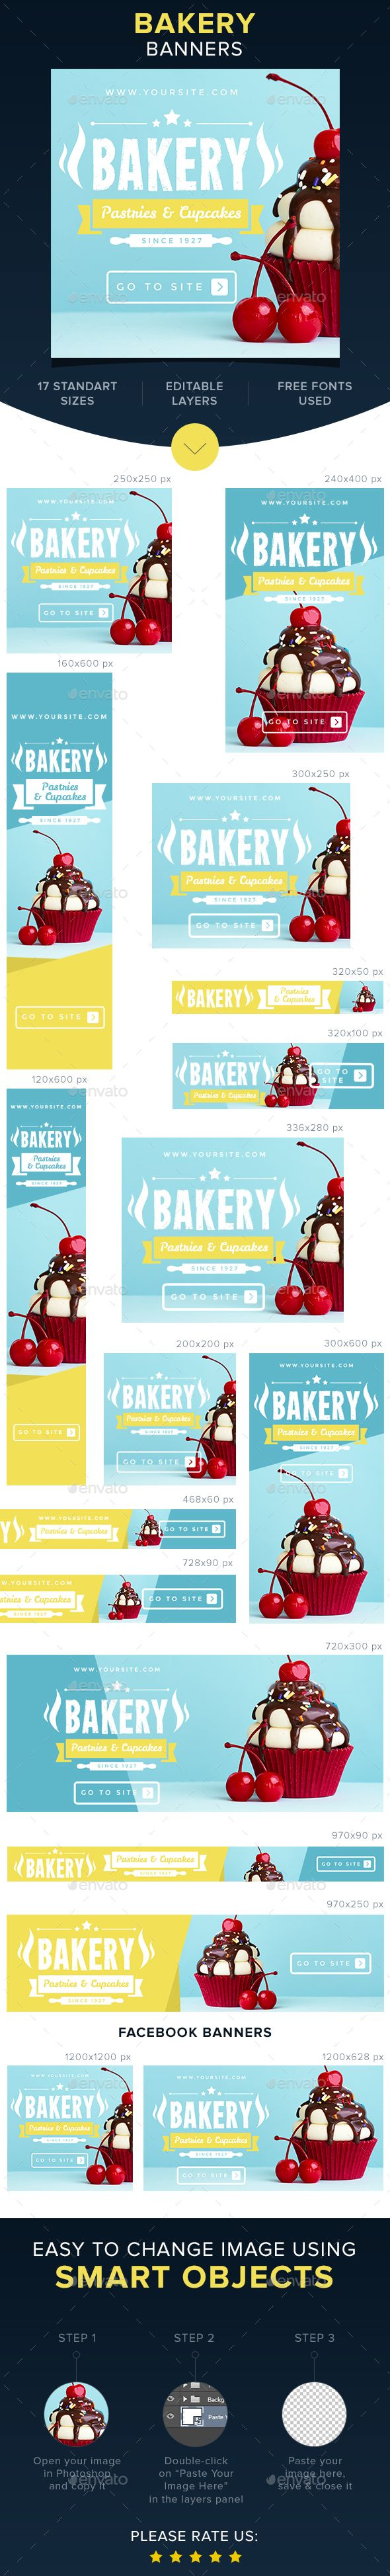 Bakery Banners — Photoshop PSD #icing #cupcakes • Available here → https://graphicriver.net/item/bakery-banners/16730326?ref=pxcr